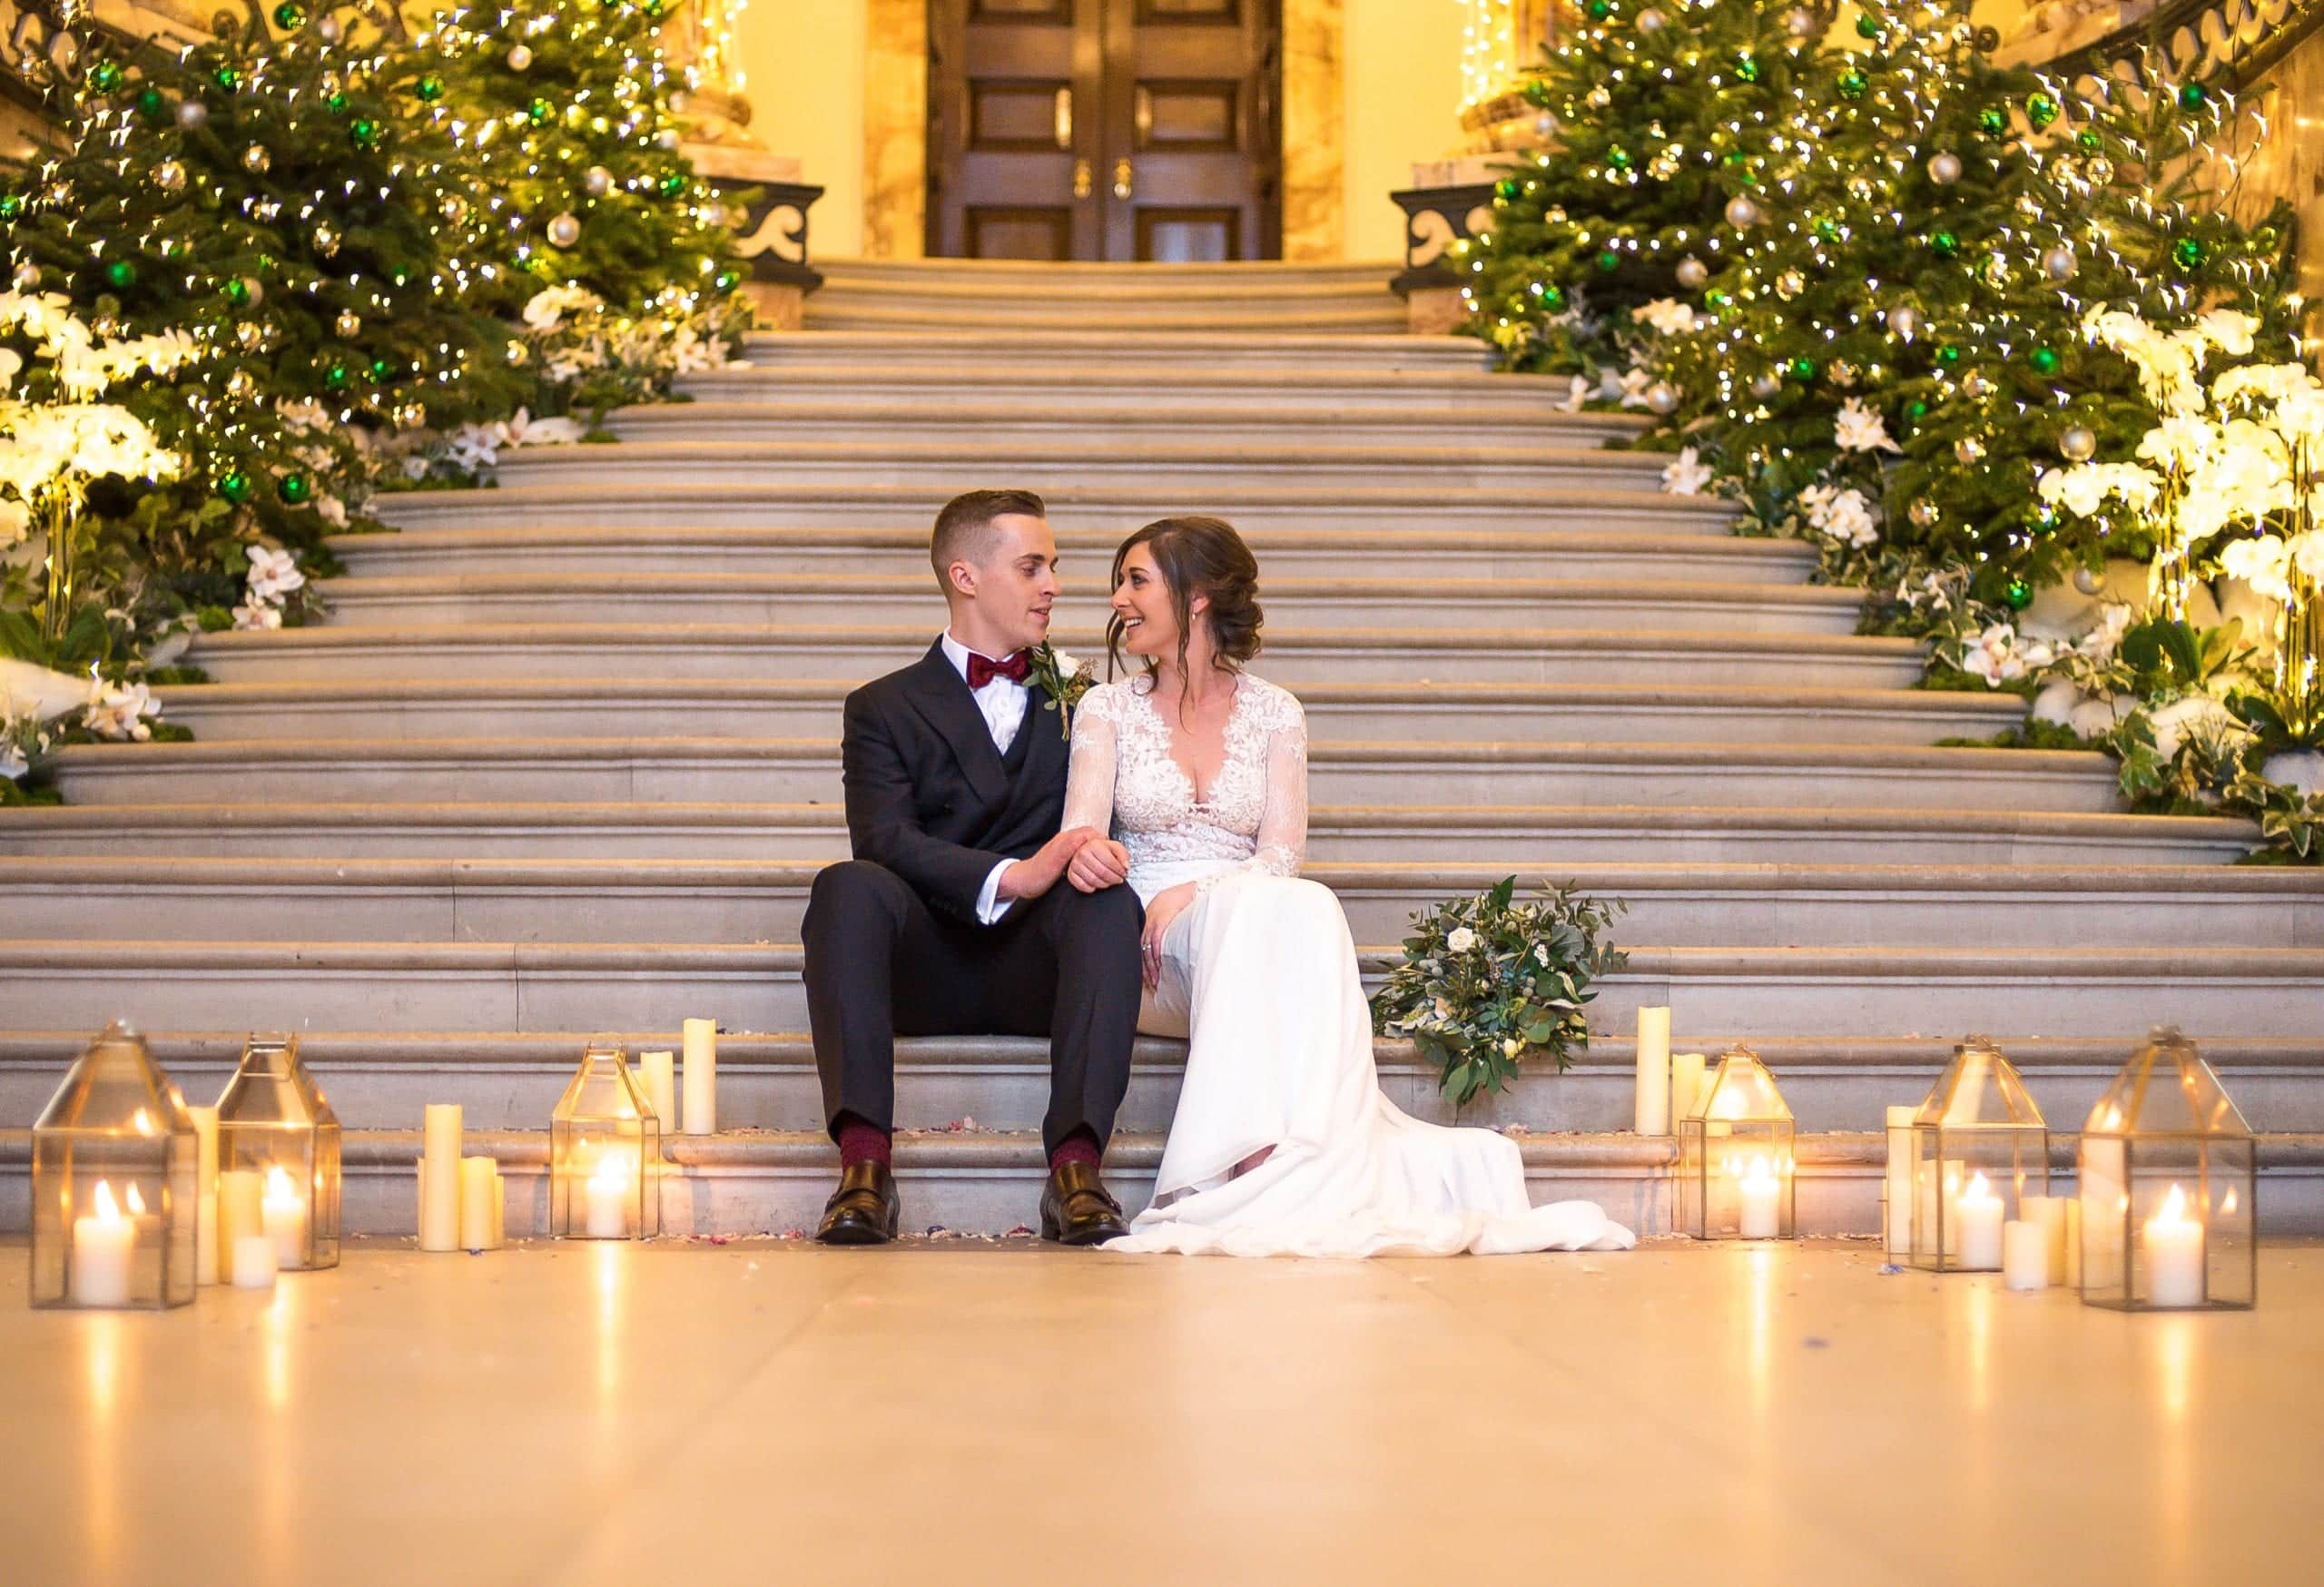 Wedding cuddles at Holkham Hall's Marble Room